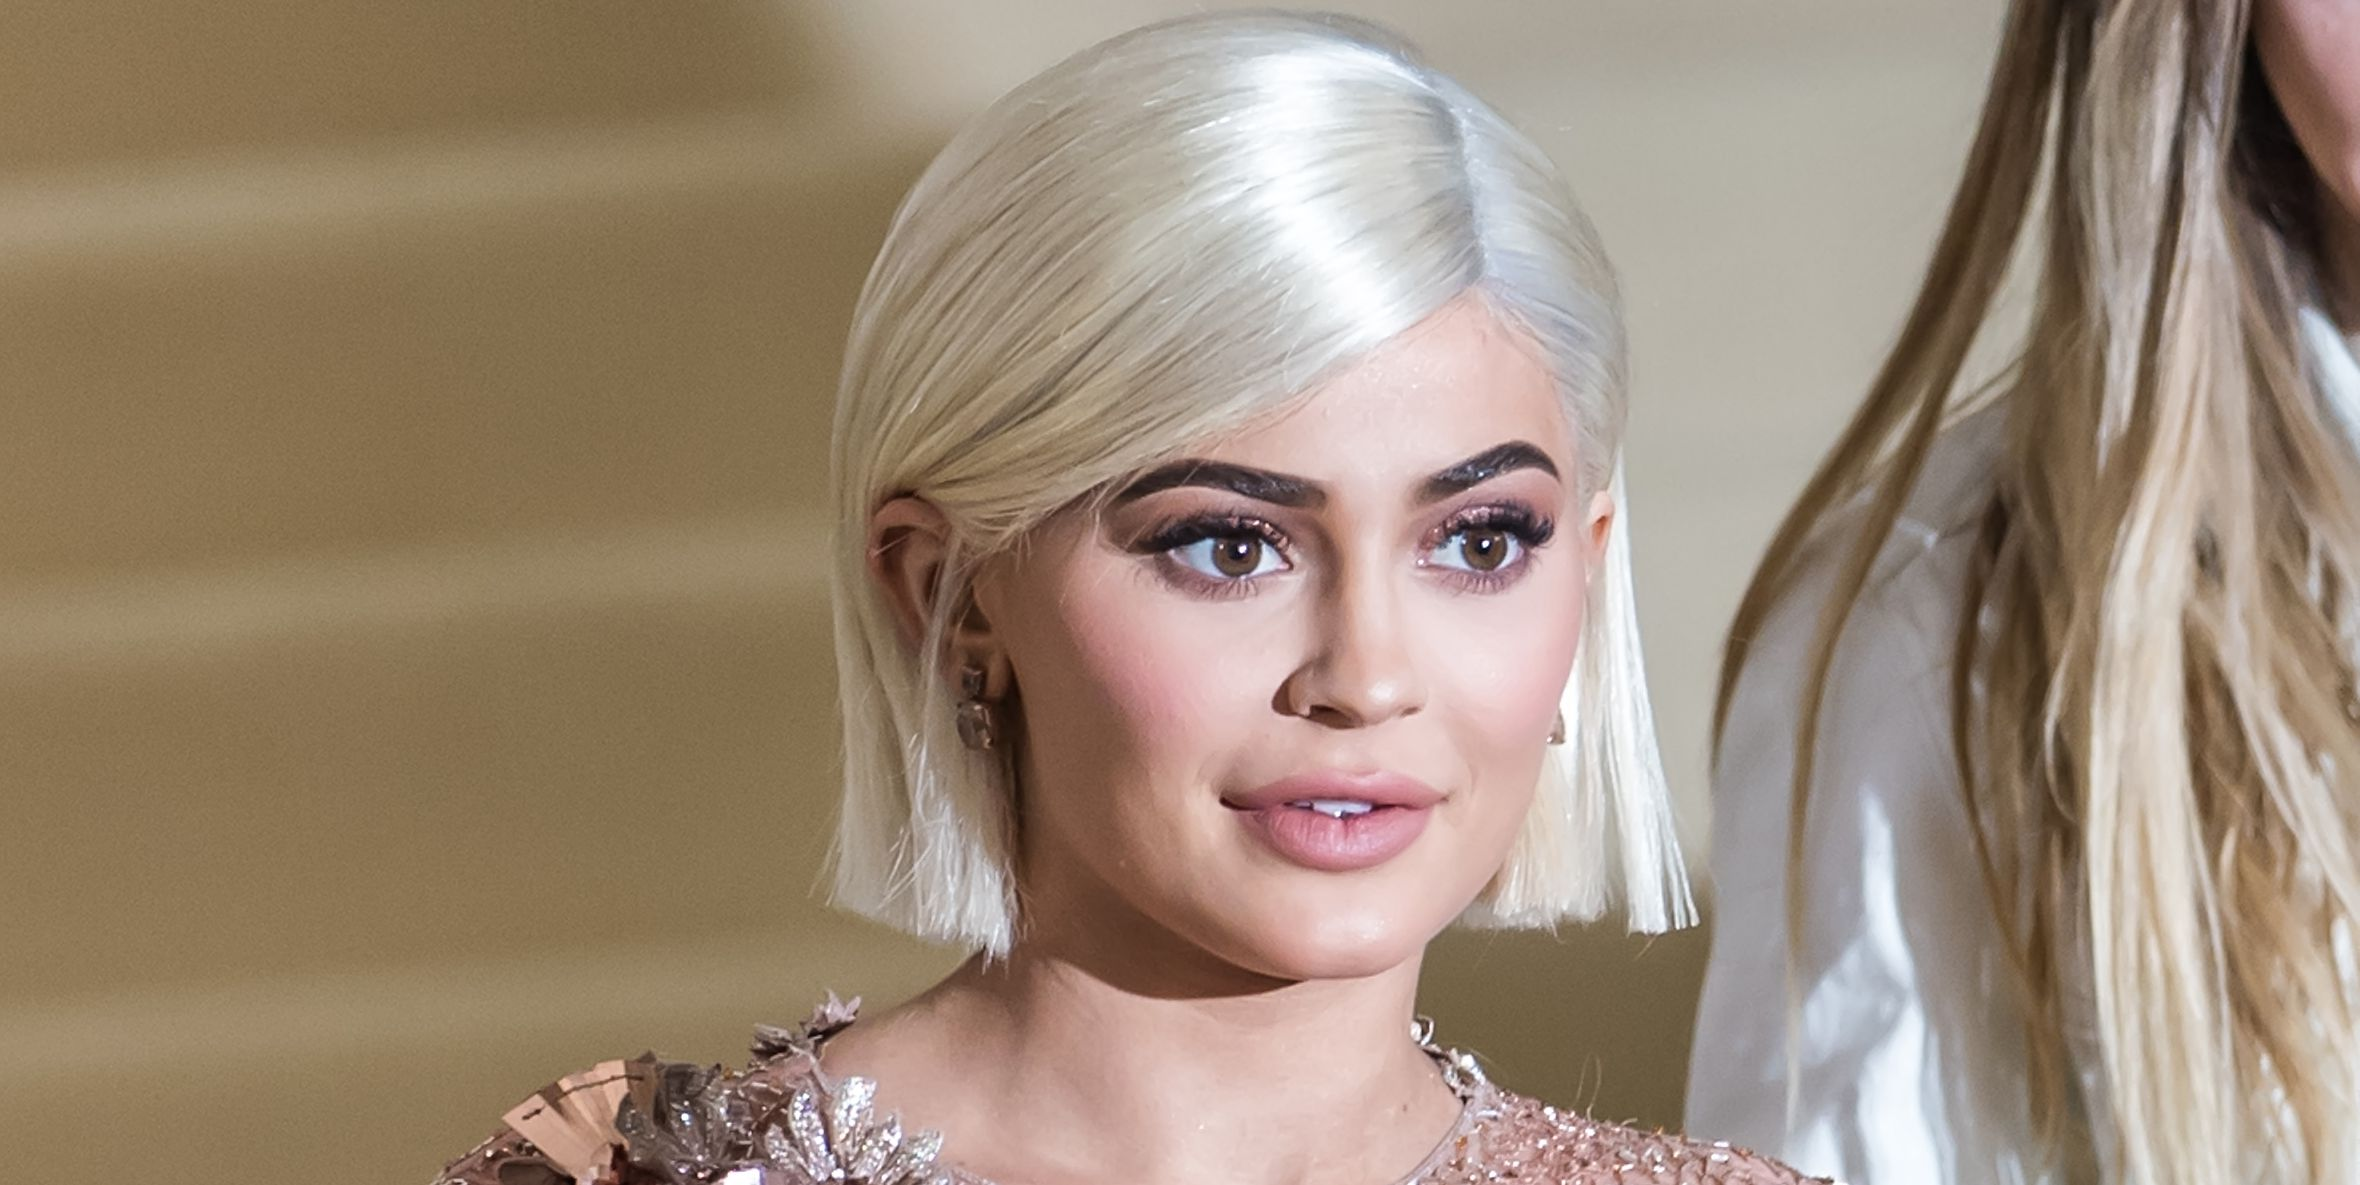 A Resurfaced Video Shows Kylie Jenner High-Fiving About Not Being Pregnant at 19…Right Before She Got Pregnant